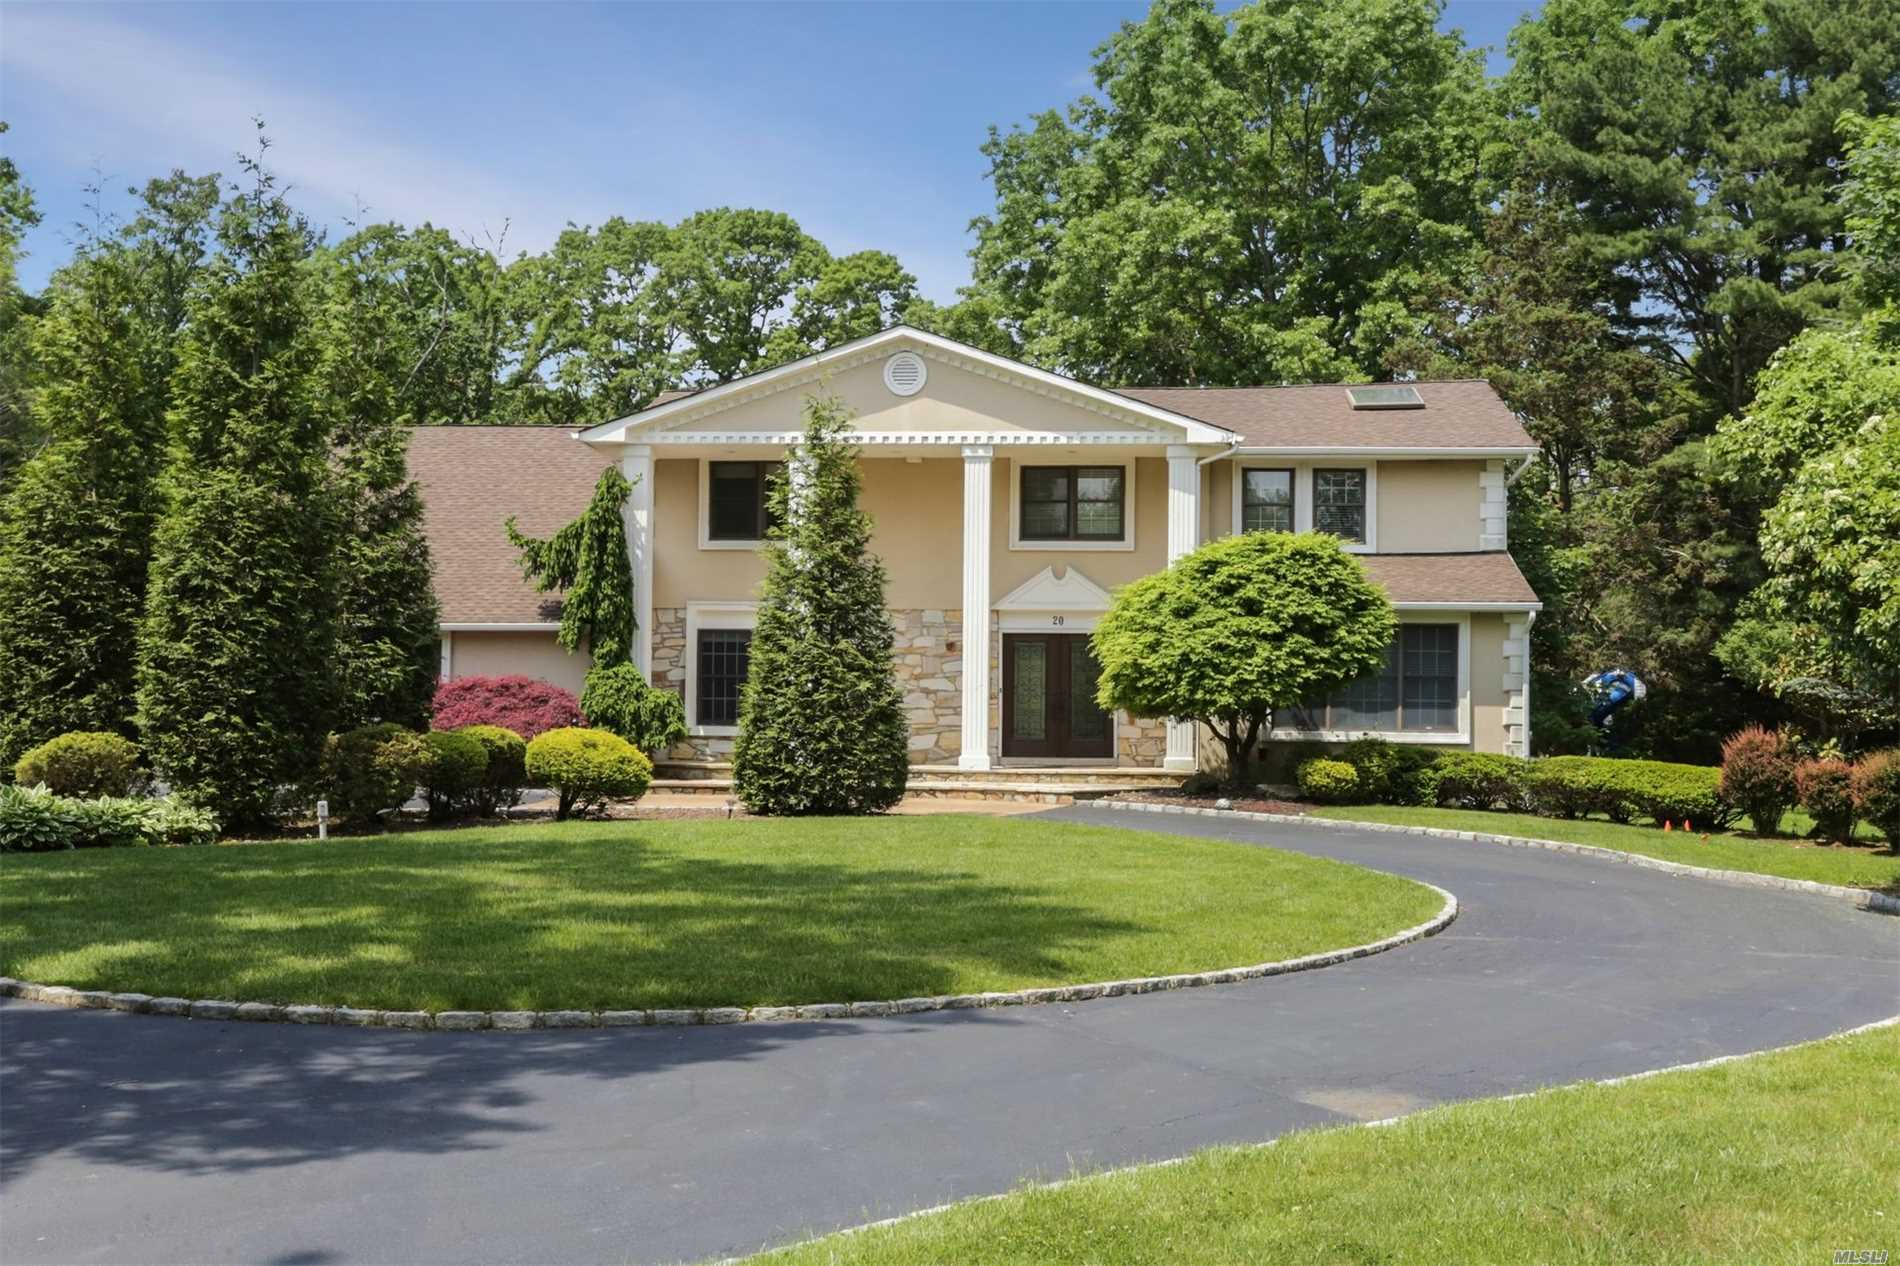 Impressive Colonial With Modern Flair Privately Situated On Flat Country Club Acre In Cul De Sac. Sought After Round Swamp Rd. Location Is Convenient To All.This Distinctive Home Offers Circular Drive, Grand Marble Entry, Rich Wood Floors, Full Guest Suite Off Kitchen, Front & Rear Staircases, 4 Br's Upstairs + Fabulous Bonus Room!Lush Resort Style Property With Pool, Pavers & Plenty Of Room To Play.HHH East